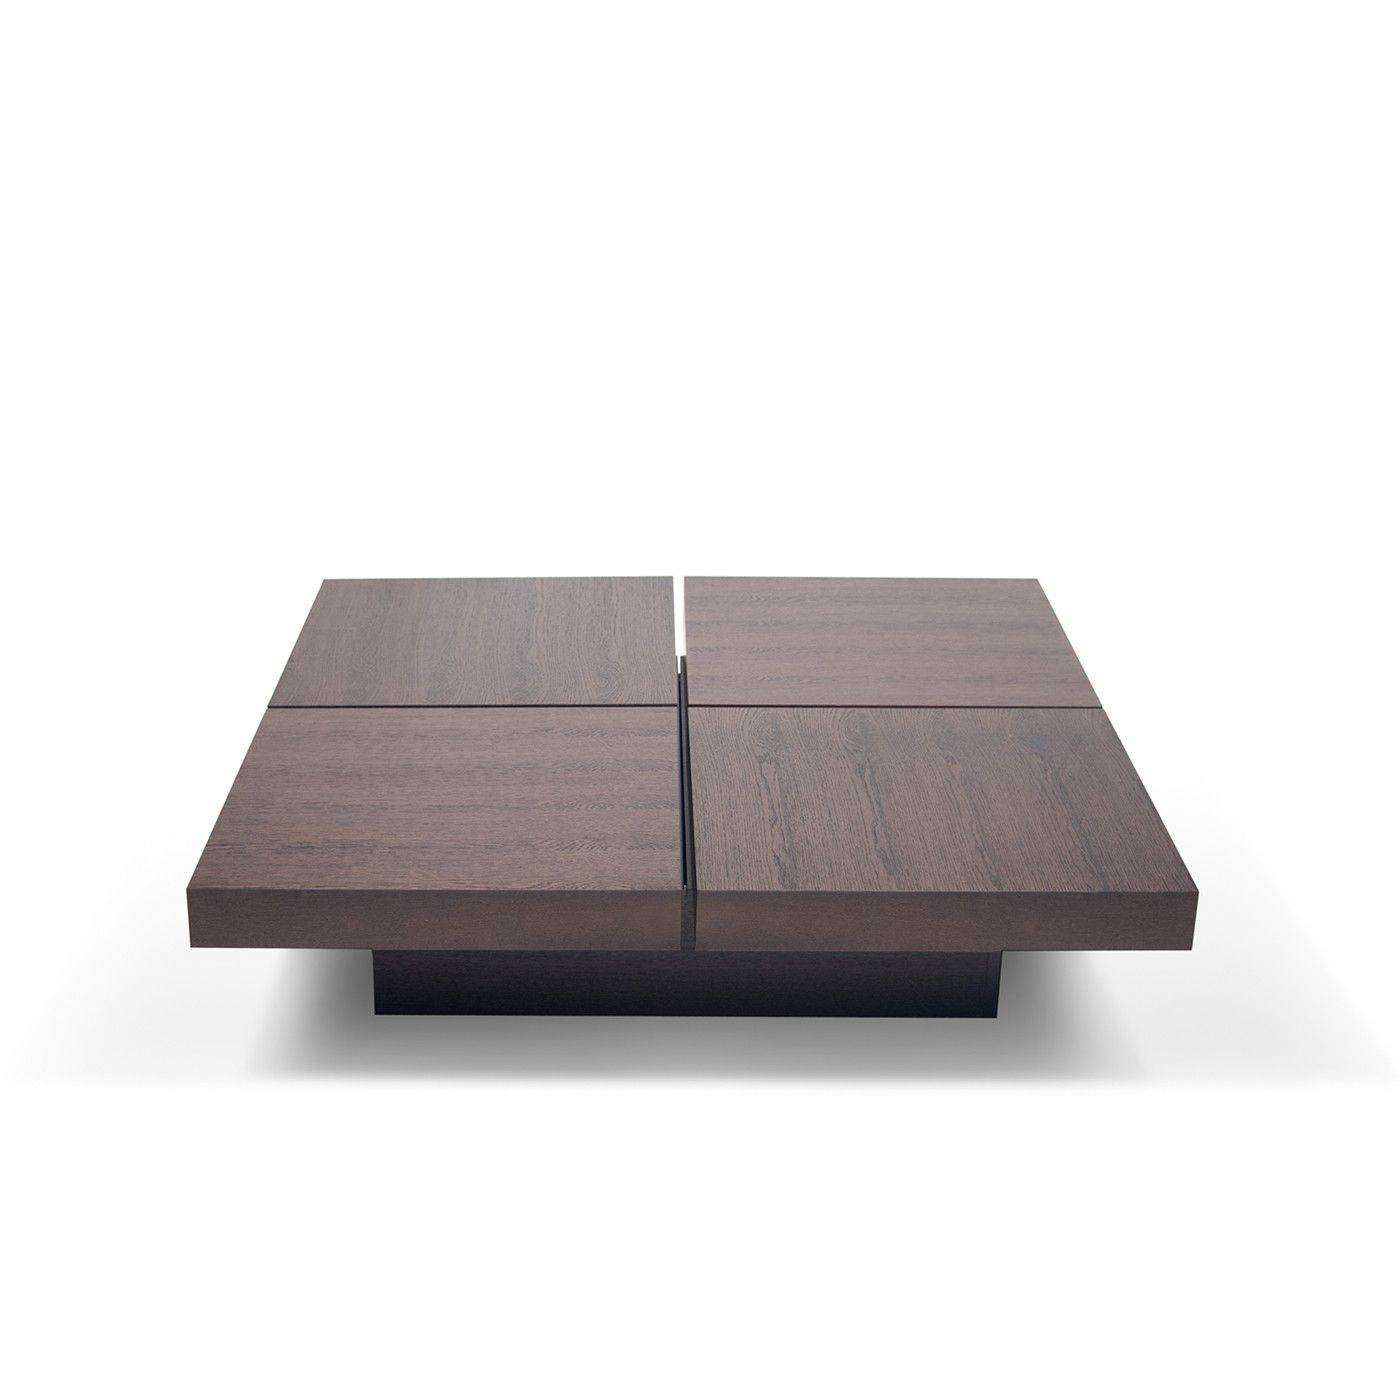 - A Four-squared Coffee Table With Low Profile And Optional Storage